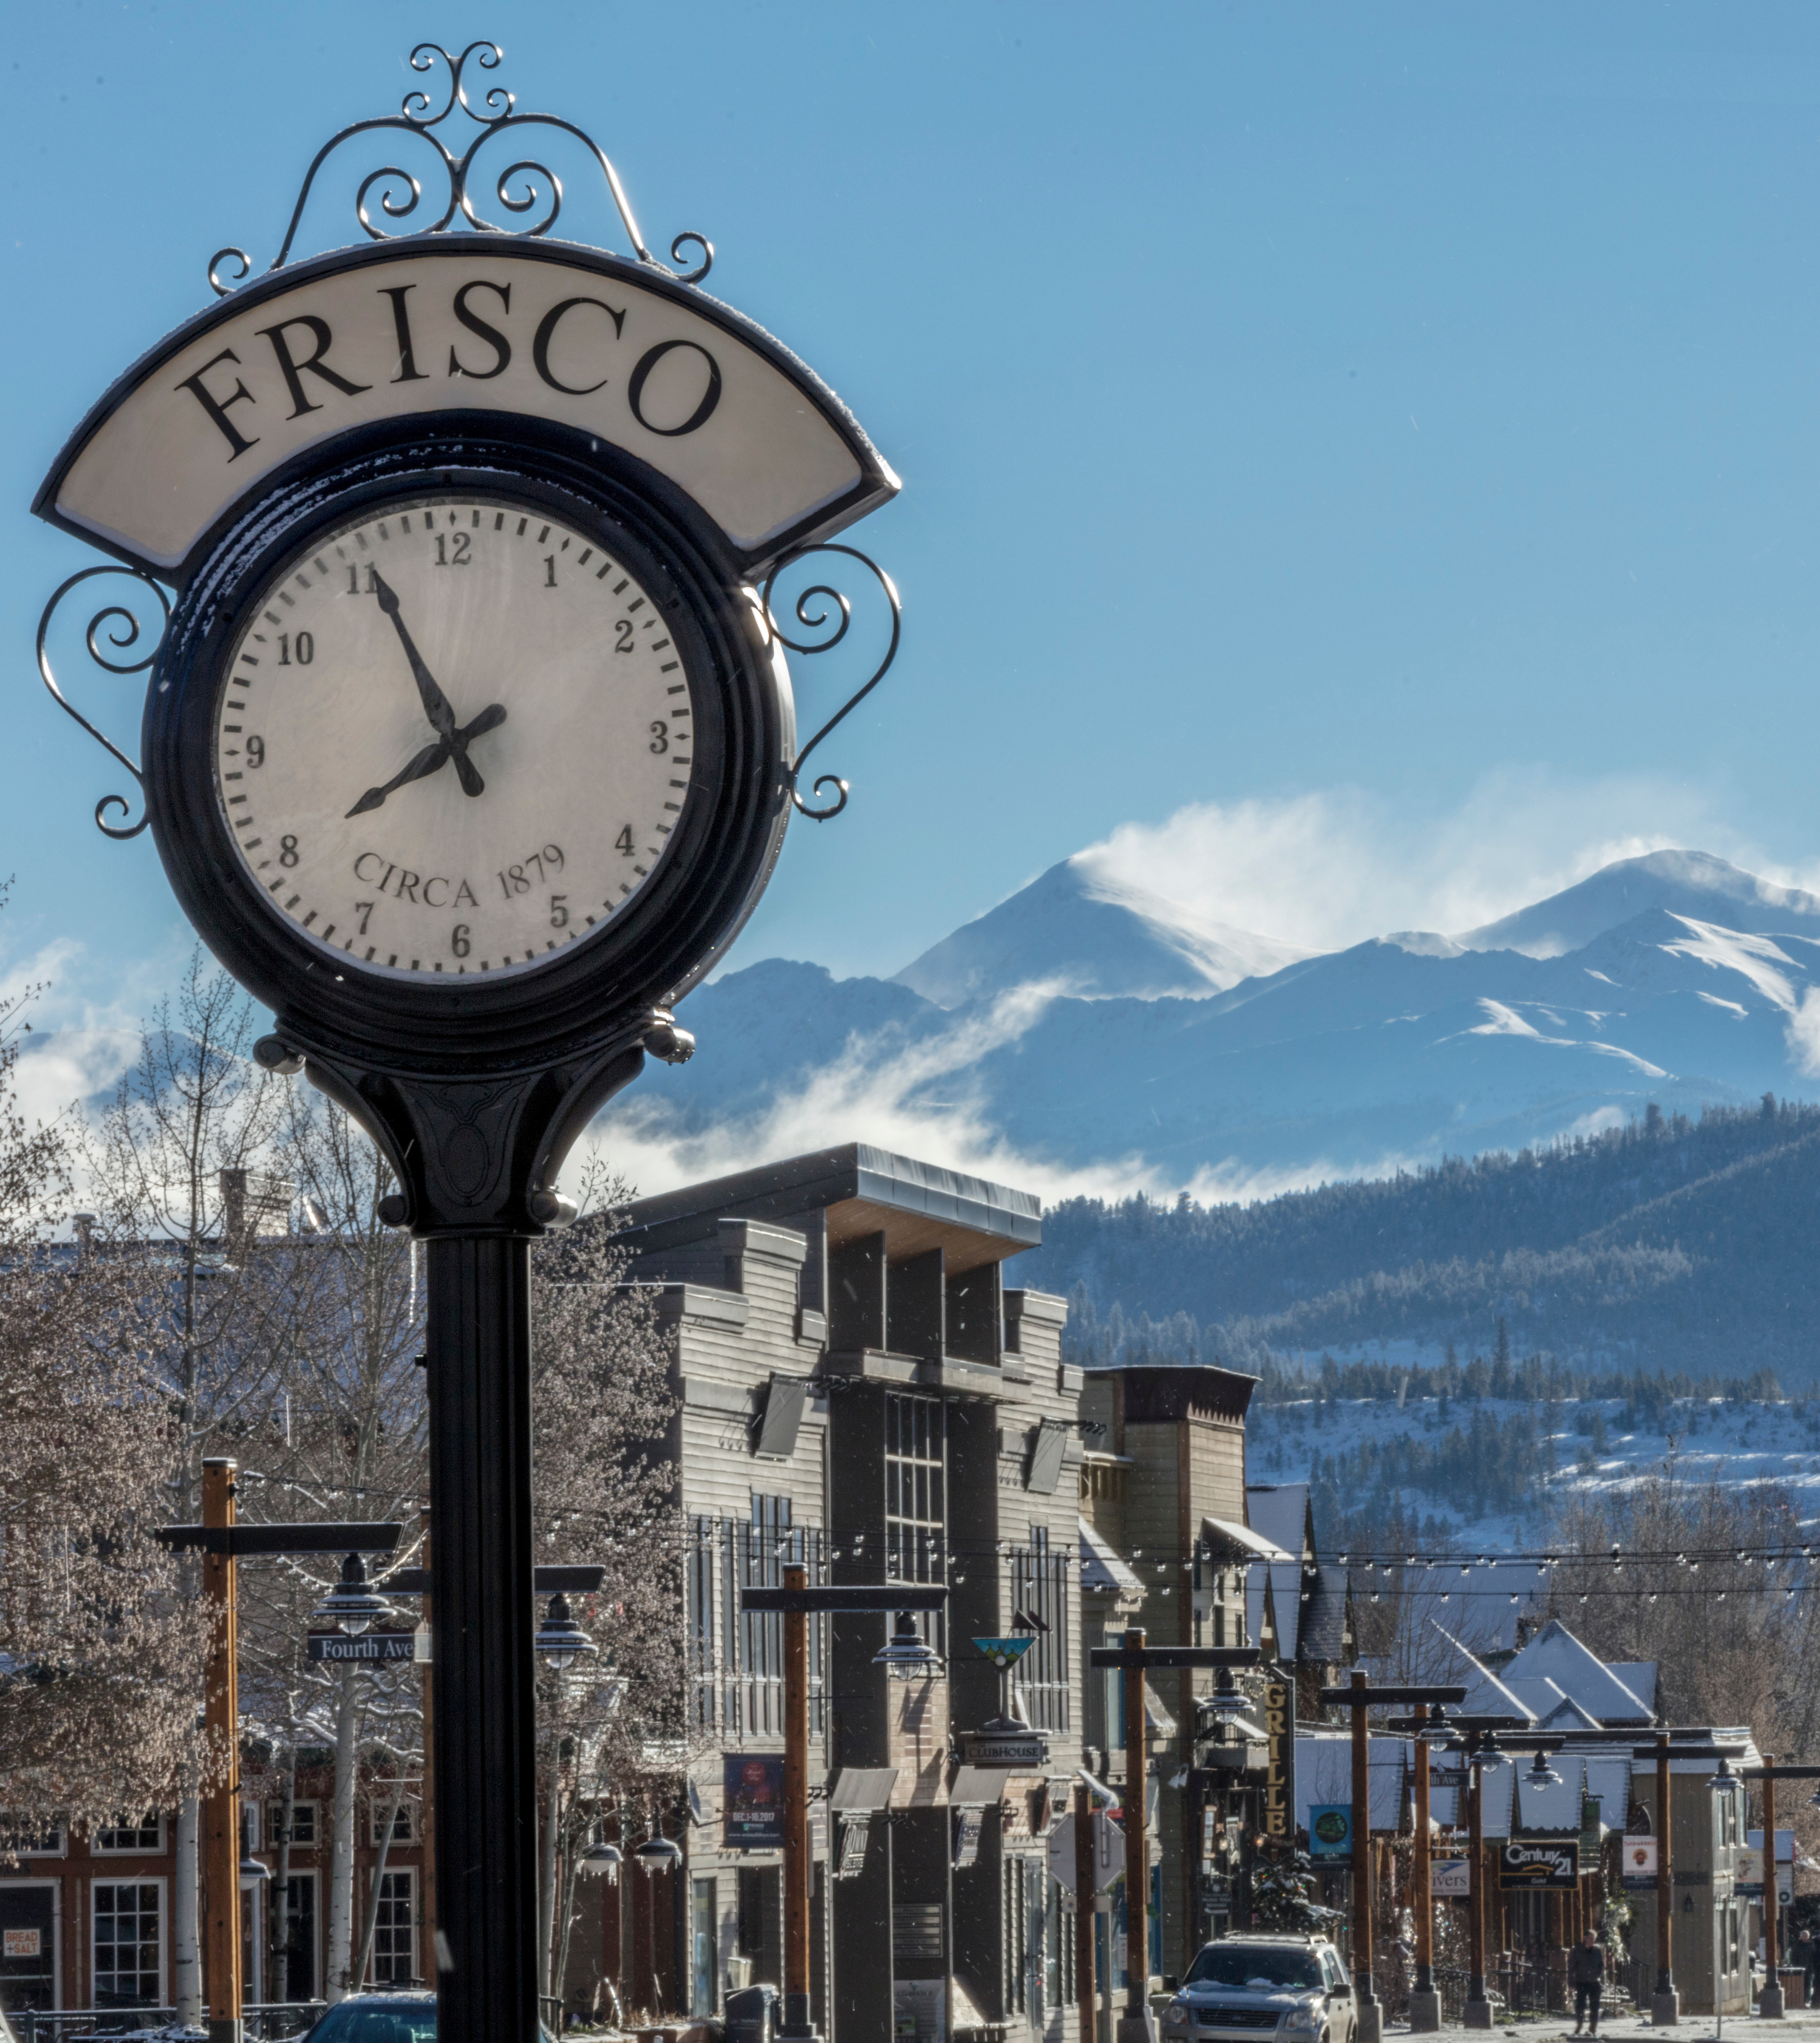 Frisco, CO | Photo Credit: Todd Powell